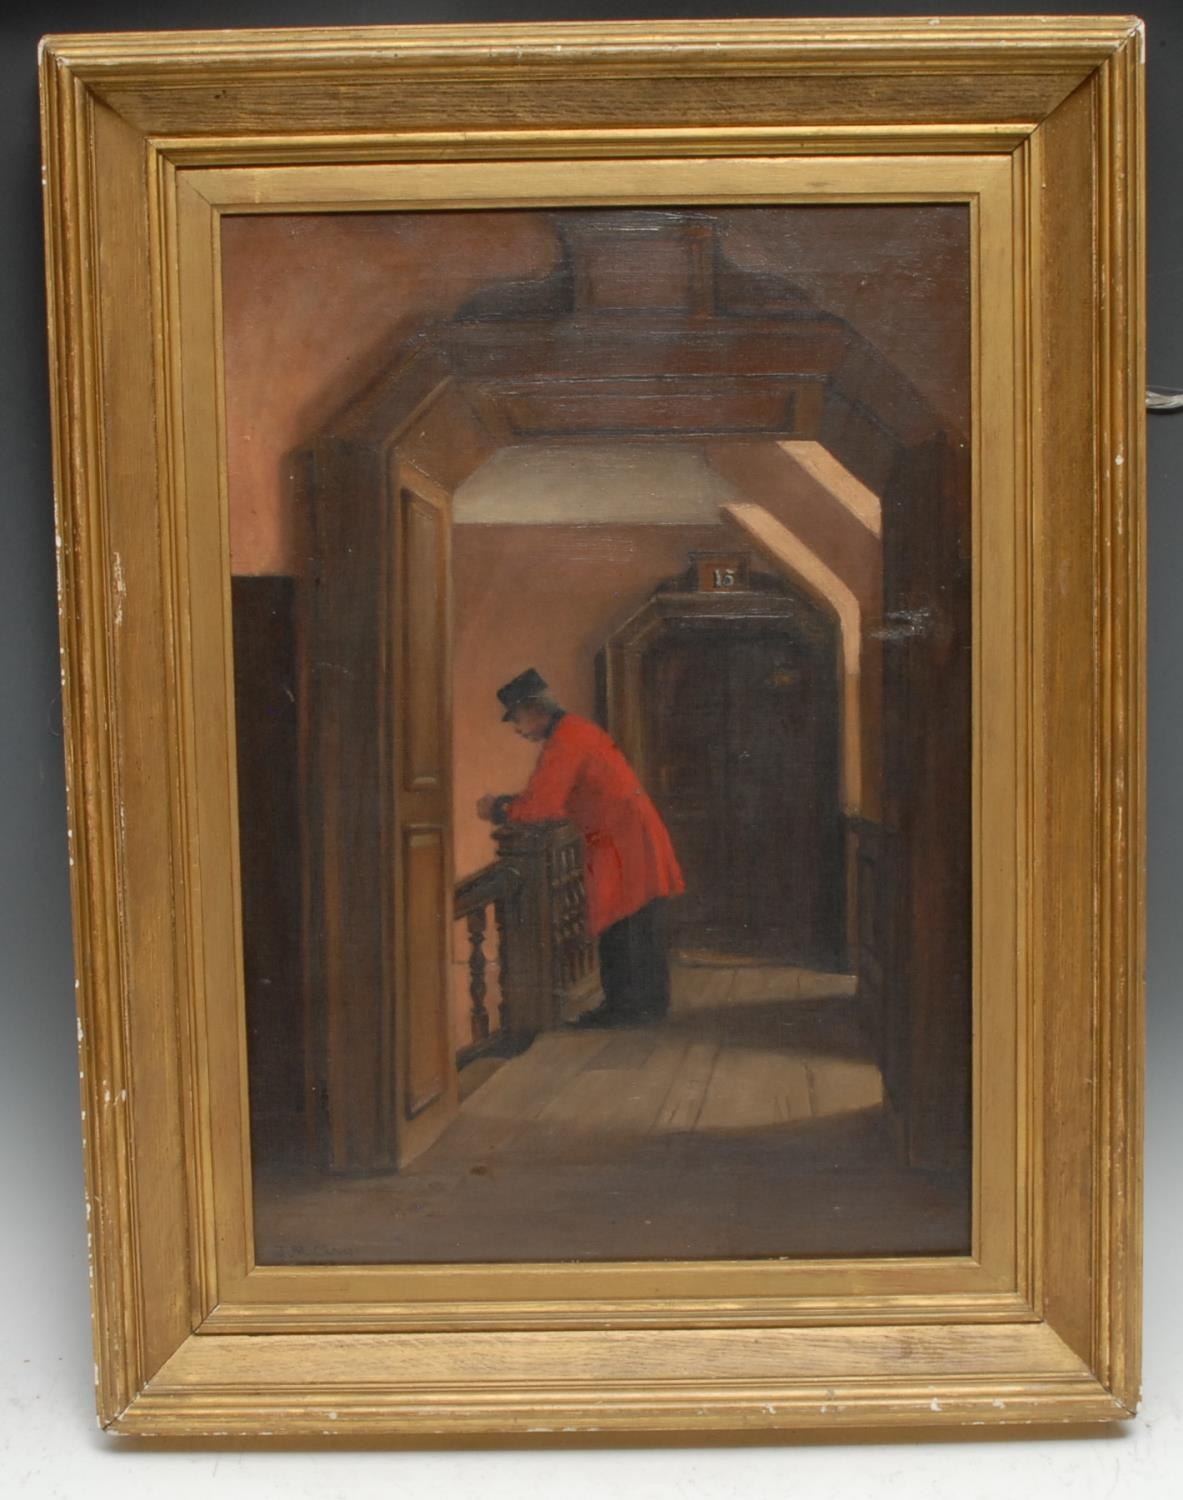 J**M**Clay Chelsea Pensioner signed, oil on canvas, 49cm x 33cm - Image 2 of 4